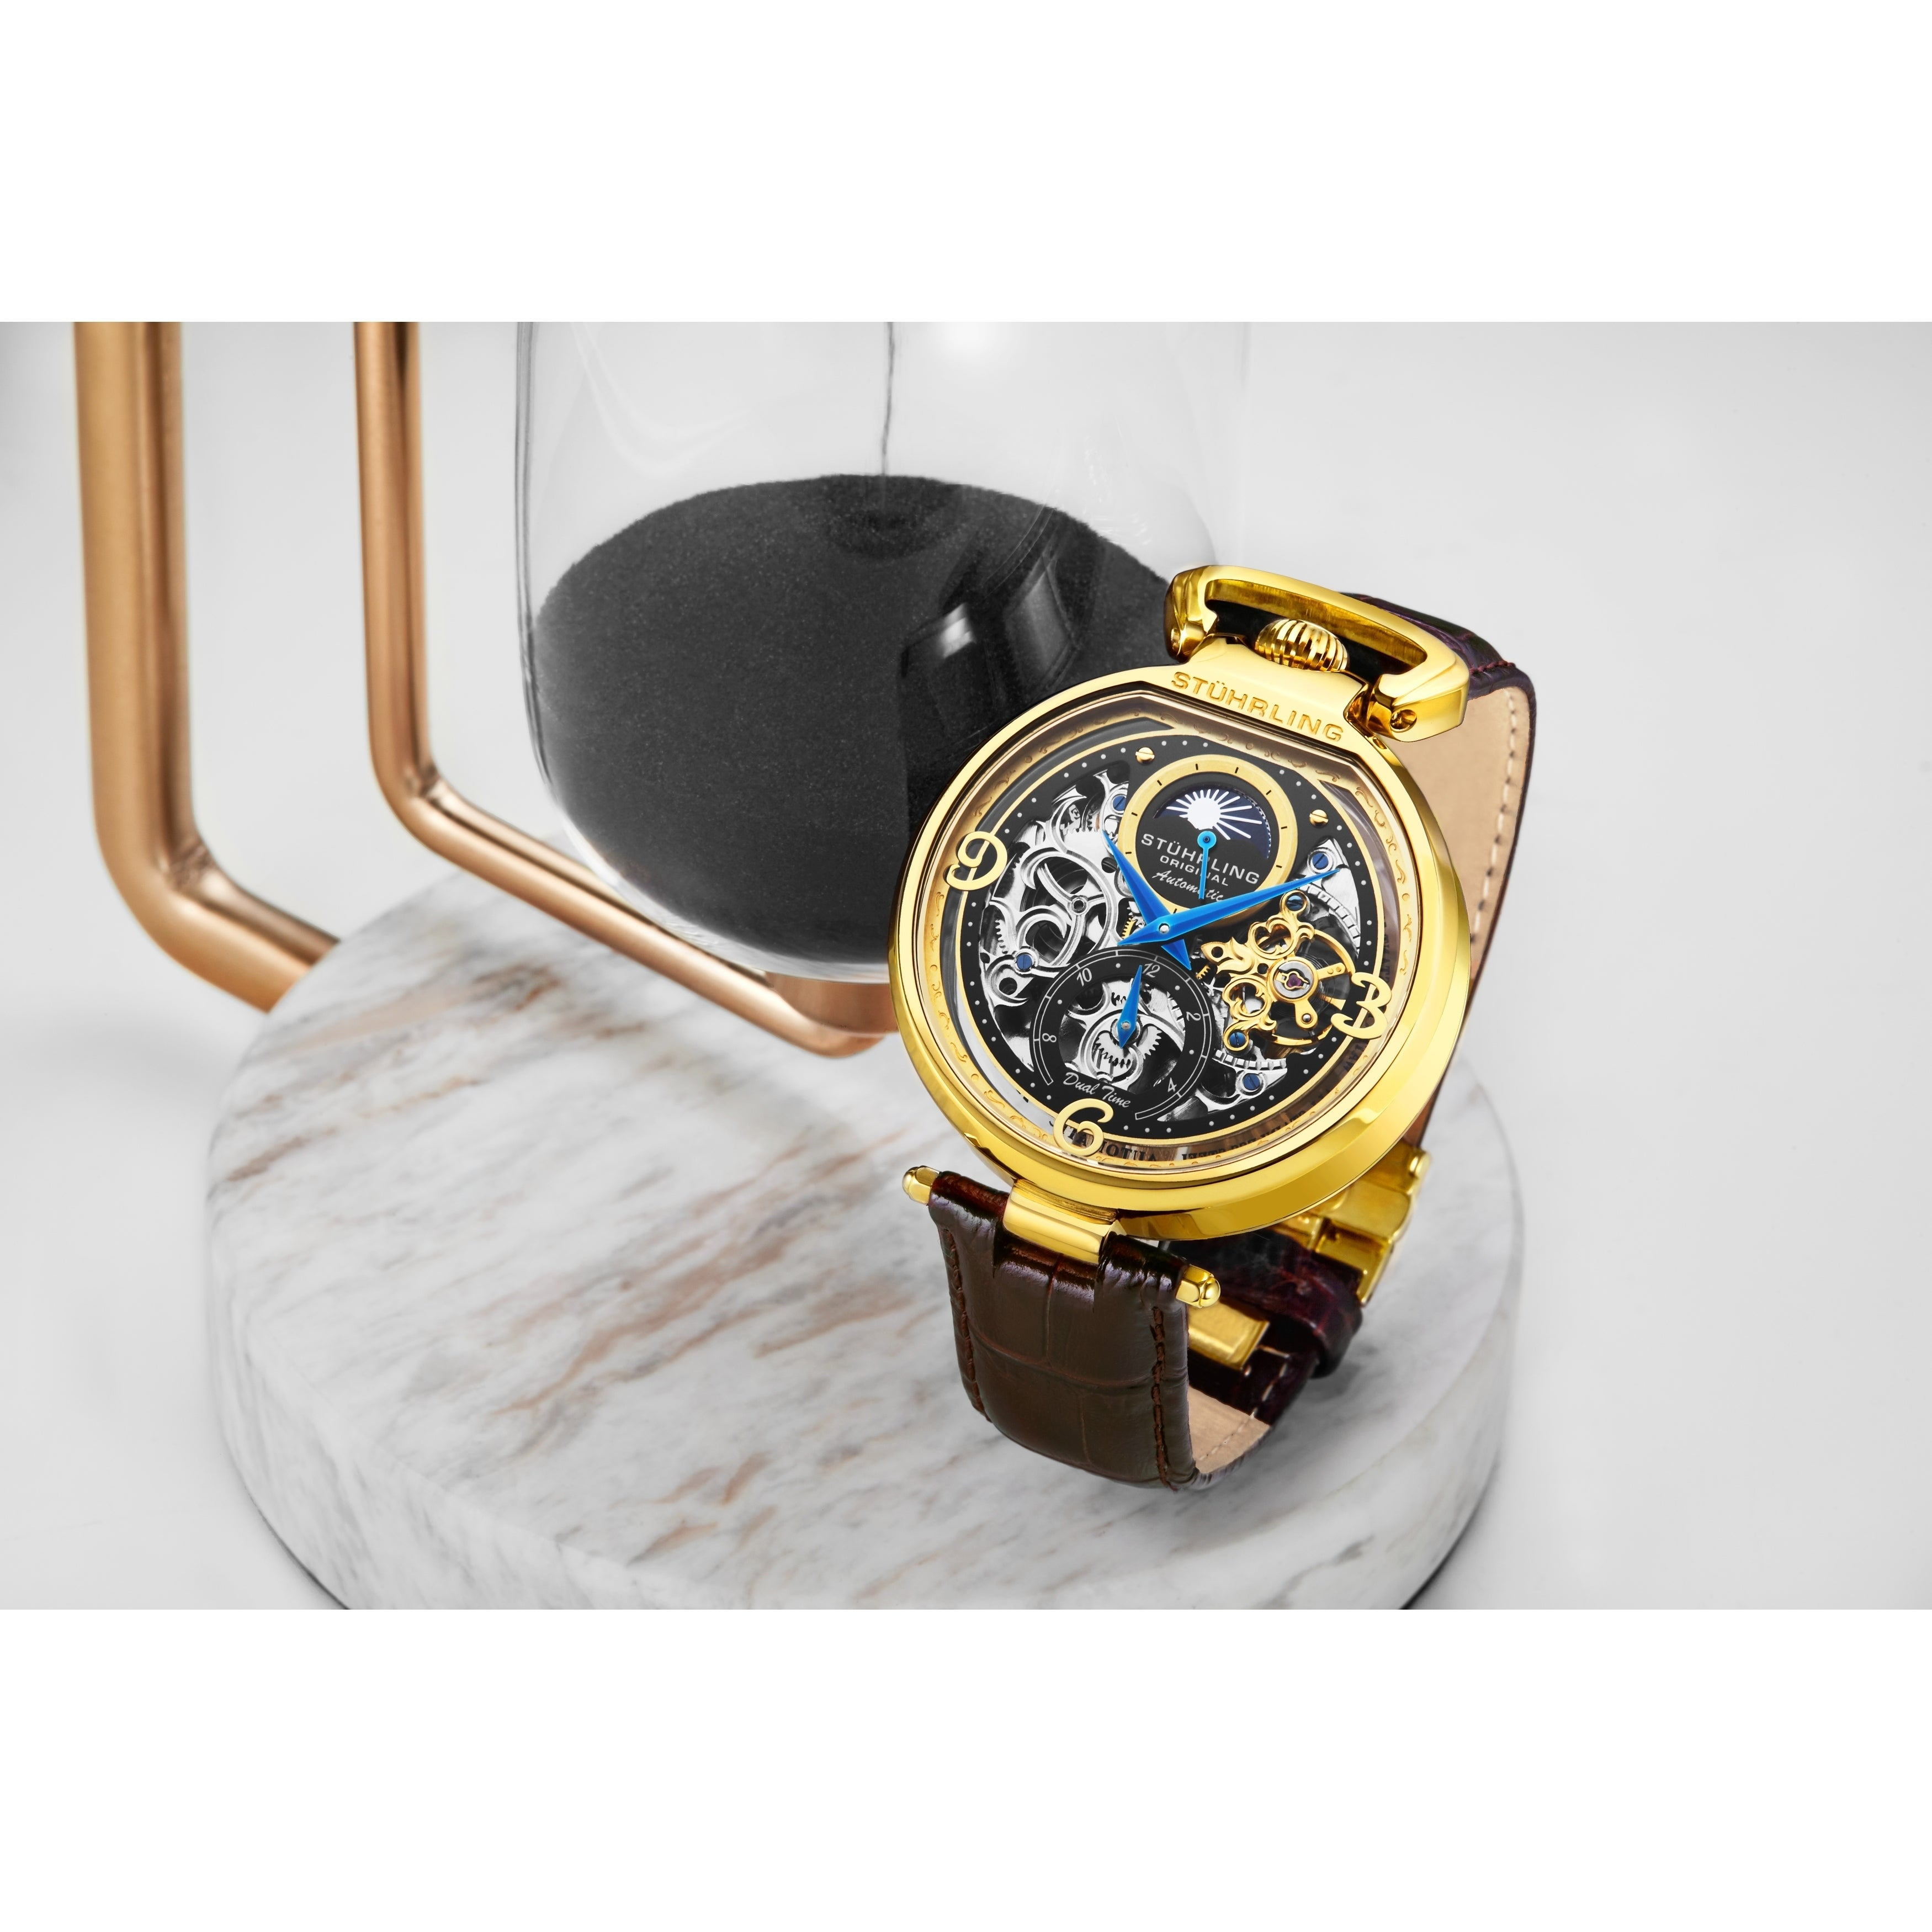 Shop for Stuhrling Original Mens Stainless Steel Automatic Watch, Skeleton  Dial, Dual Time, AM/PM Sun Moon, Leather Band, 889 Series. Get free  delivery On EVERYTHING* at Overstock - Your Online Watches Store! Get 5% in  rewards with Club O ...